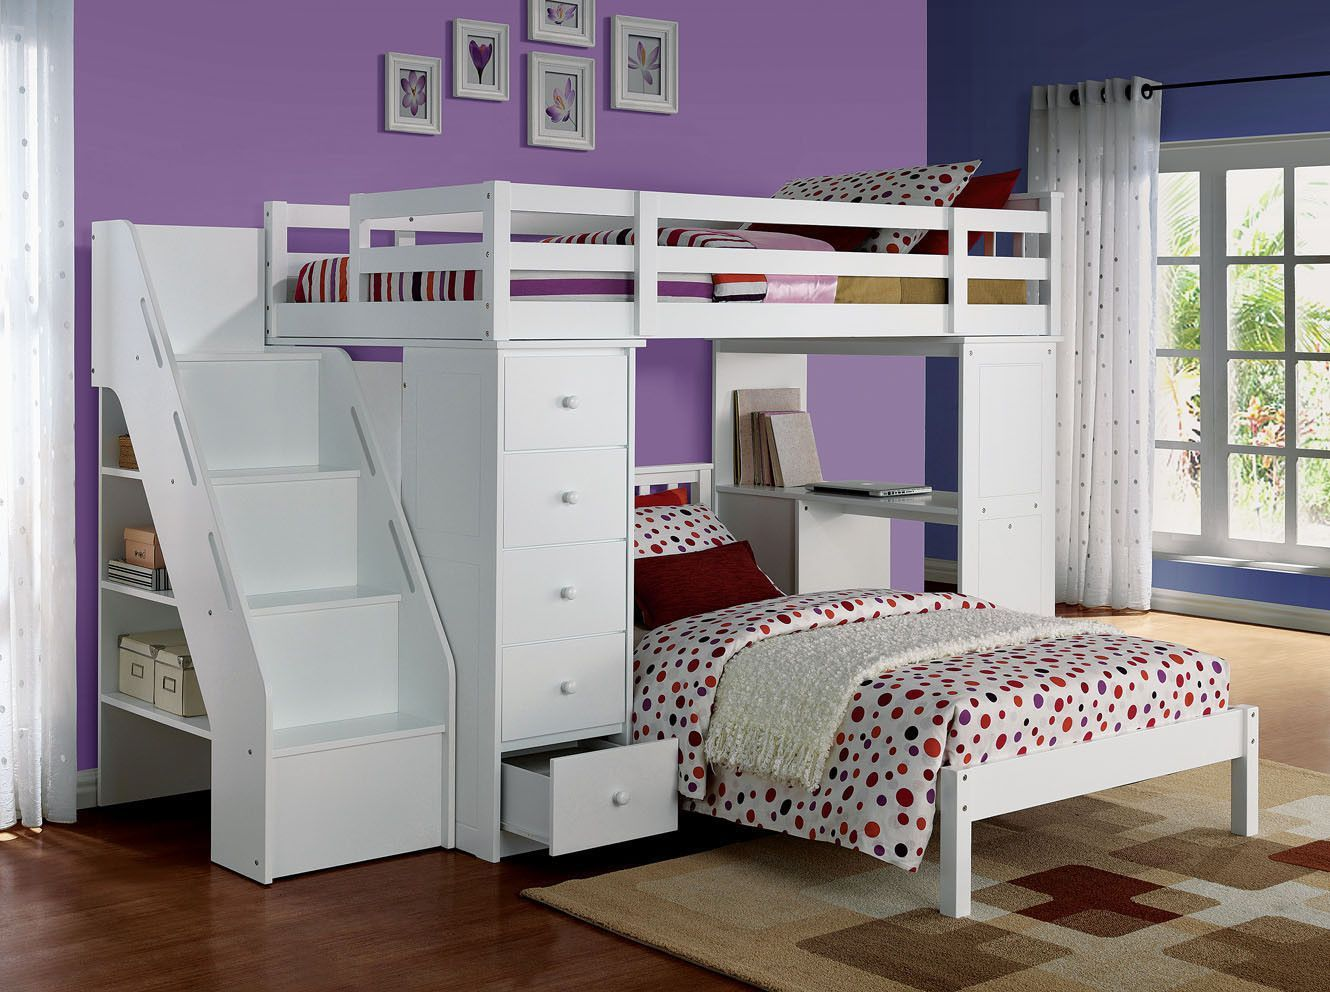 Twin loft bed with stairs and storage  Ari Loft Bed  Addie  Pinterest  Lofts Twin size loft bed and